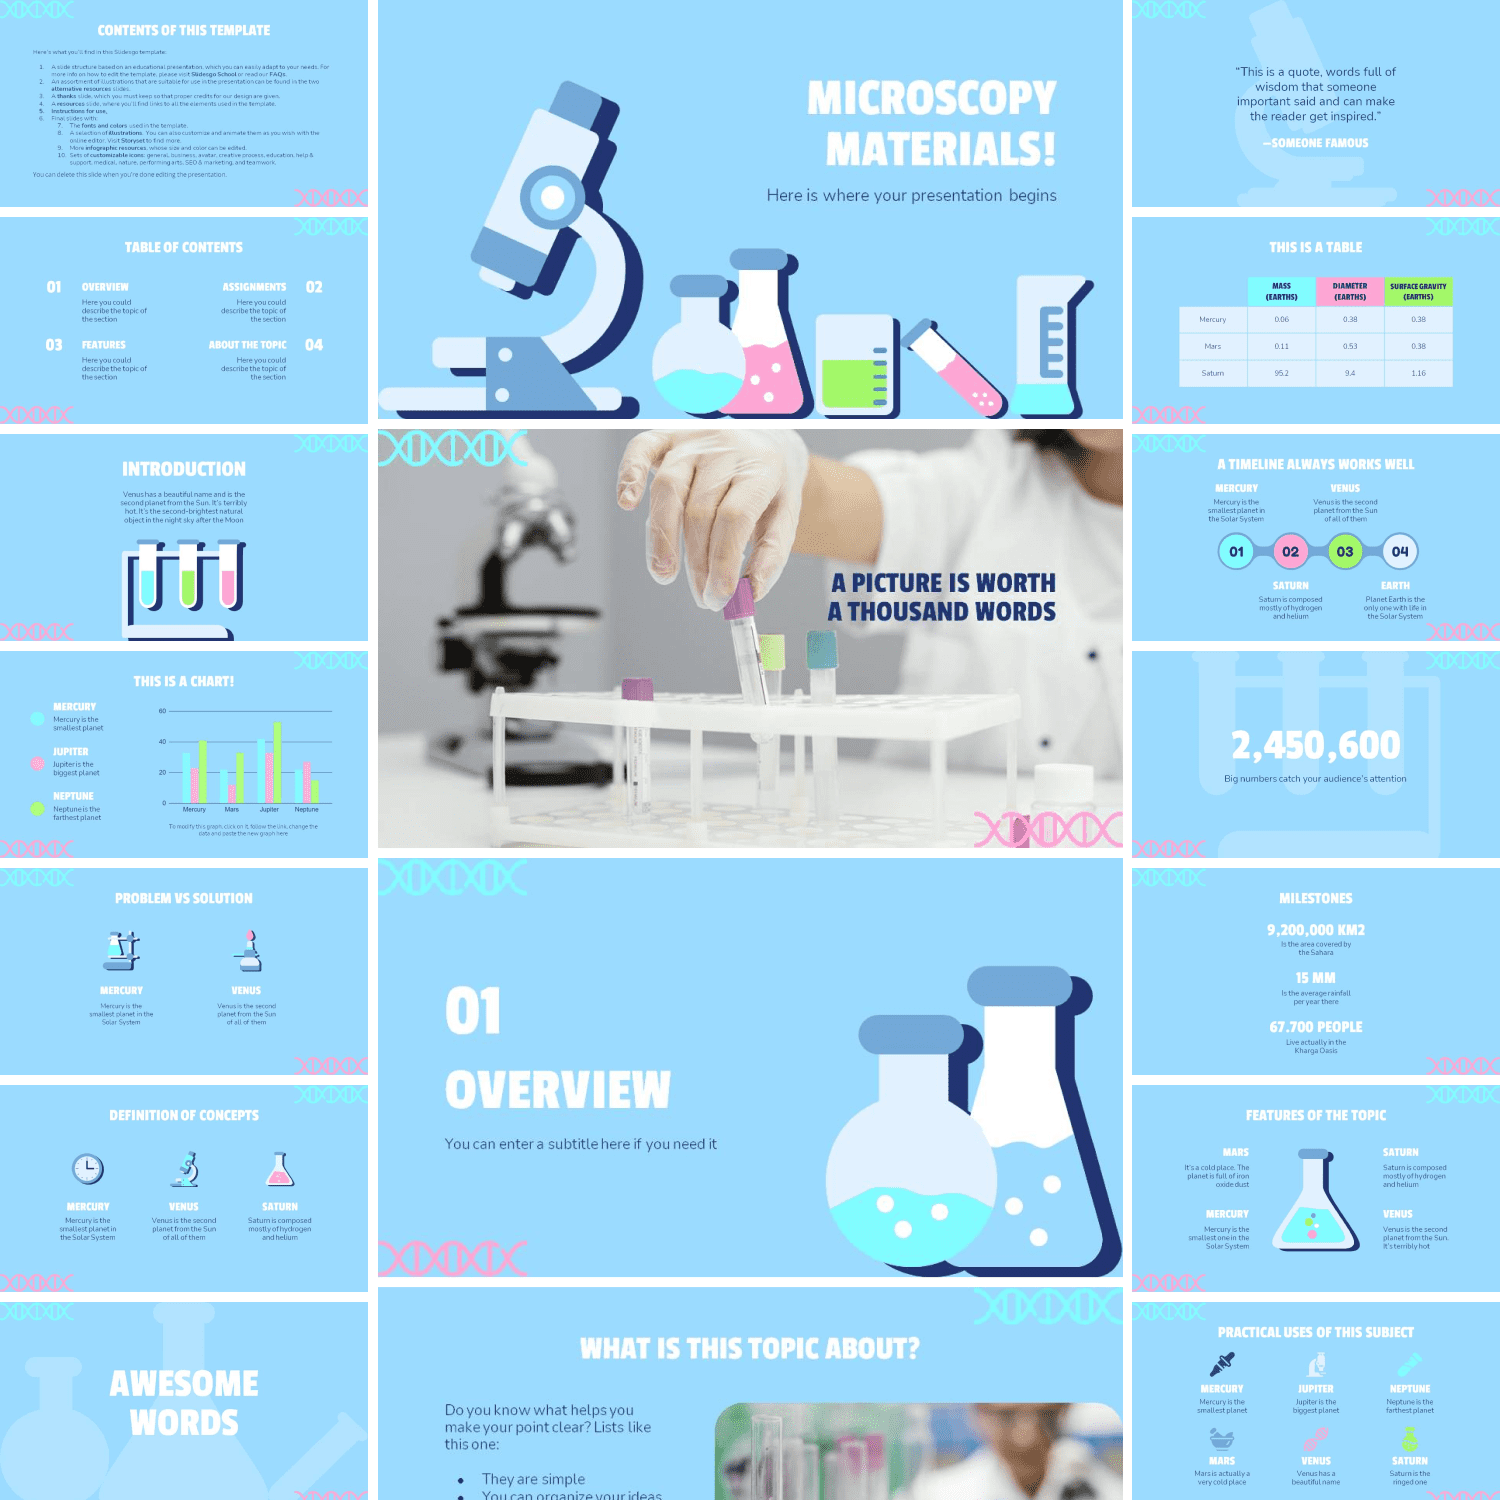 Microscoping Materials PowerPoint Presentation template image.